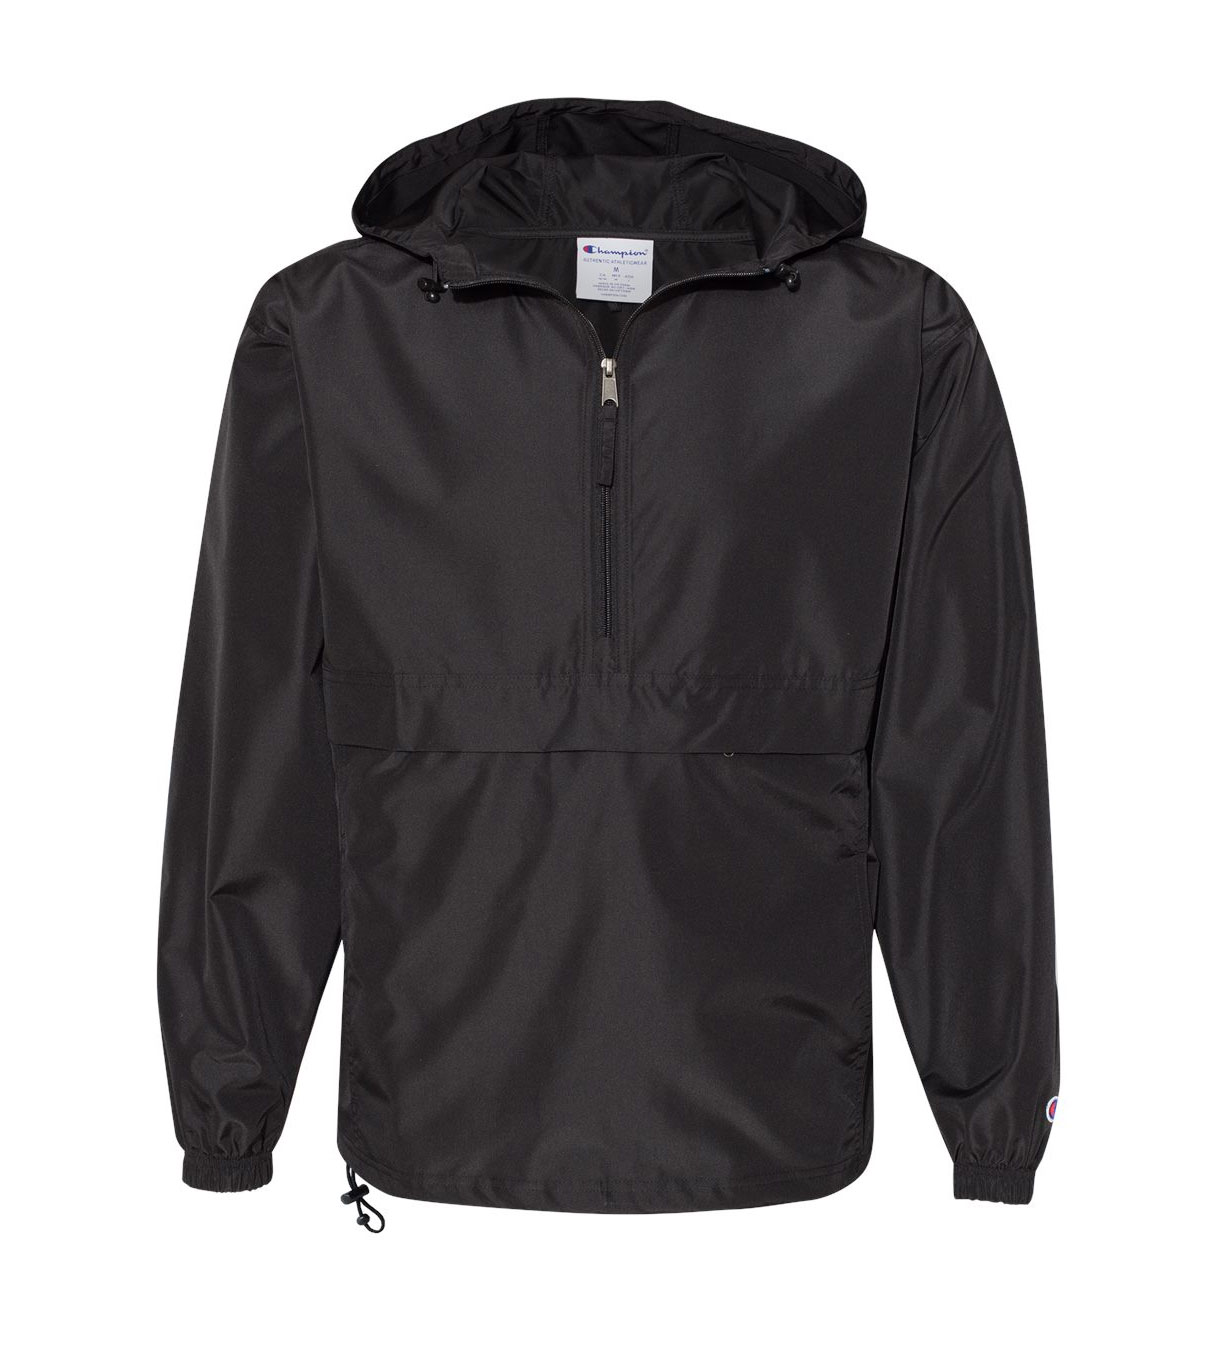 Champion Adult Packable Quarter-Zip Jacket